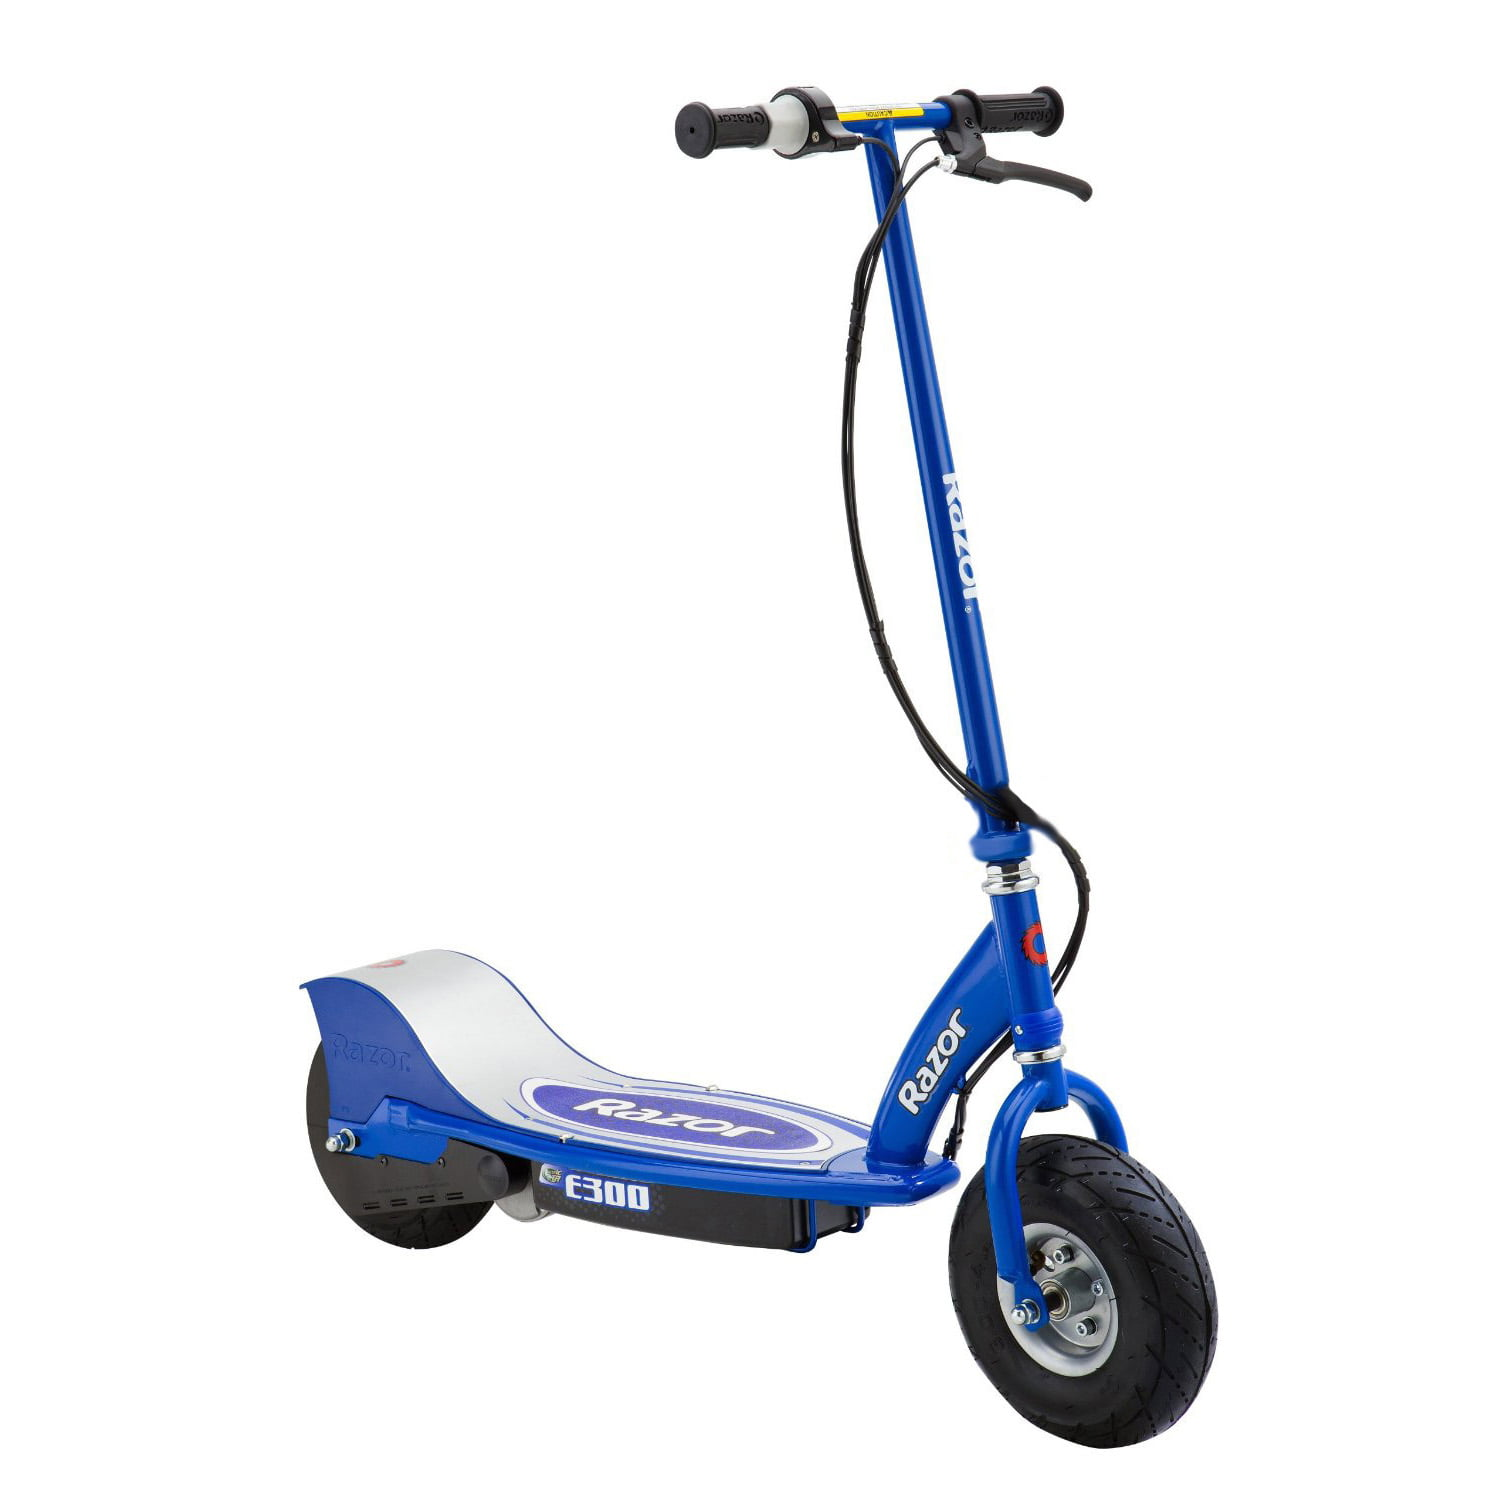 Razor E300 Electric 24 Volt Rechargeable Motorized Ride On Kids Scooter, Blue by Razor